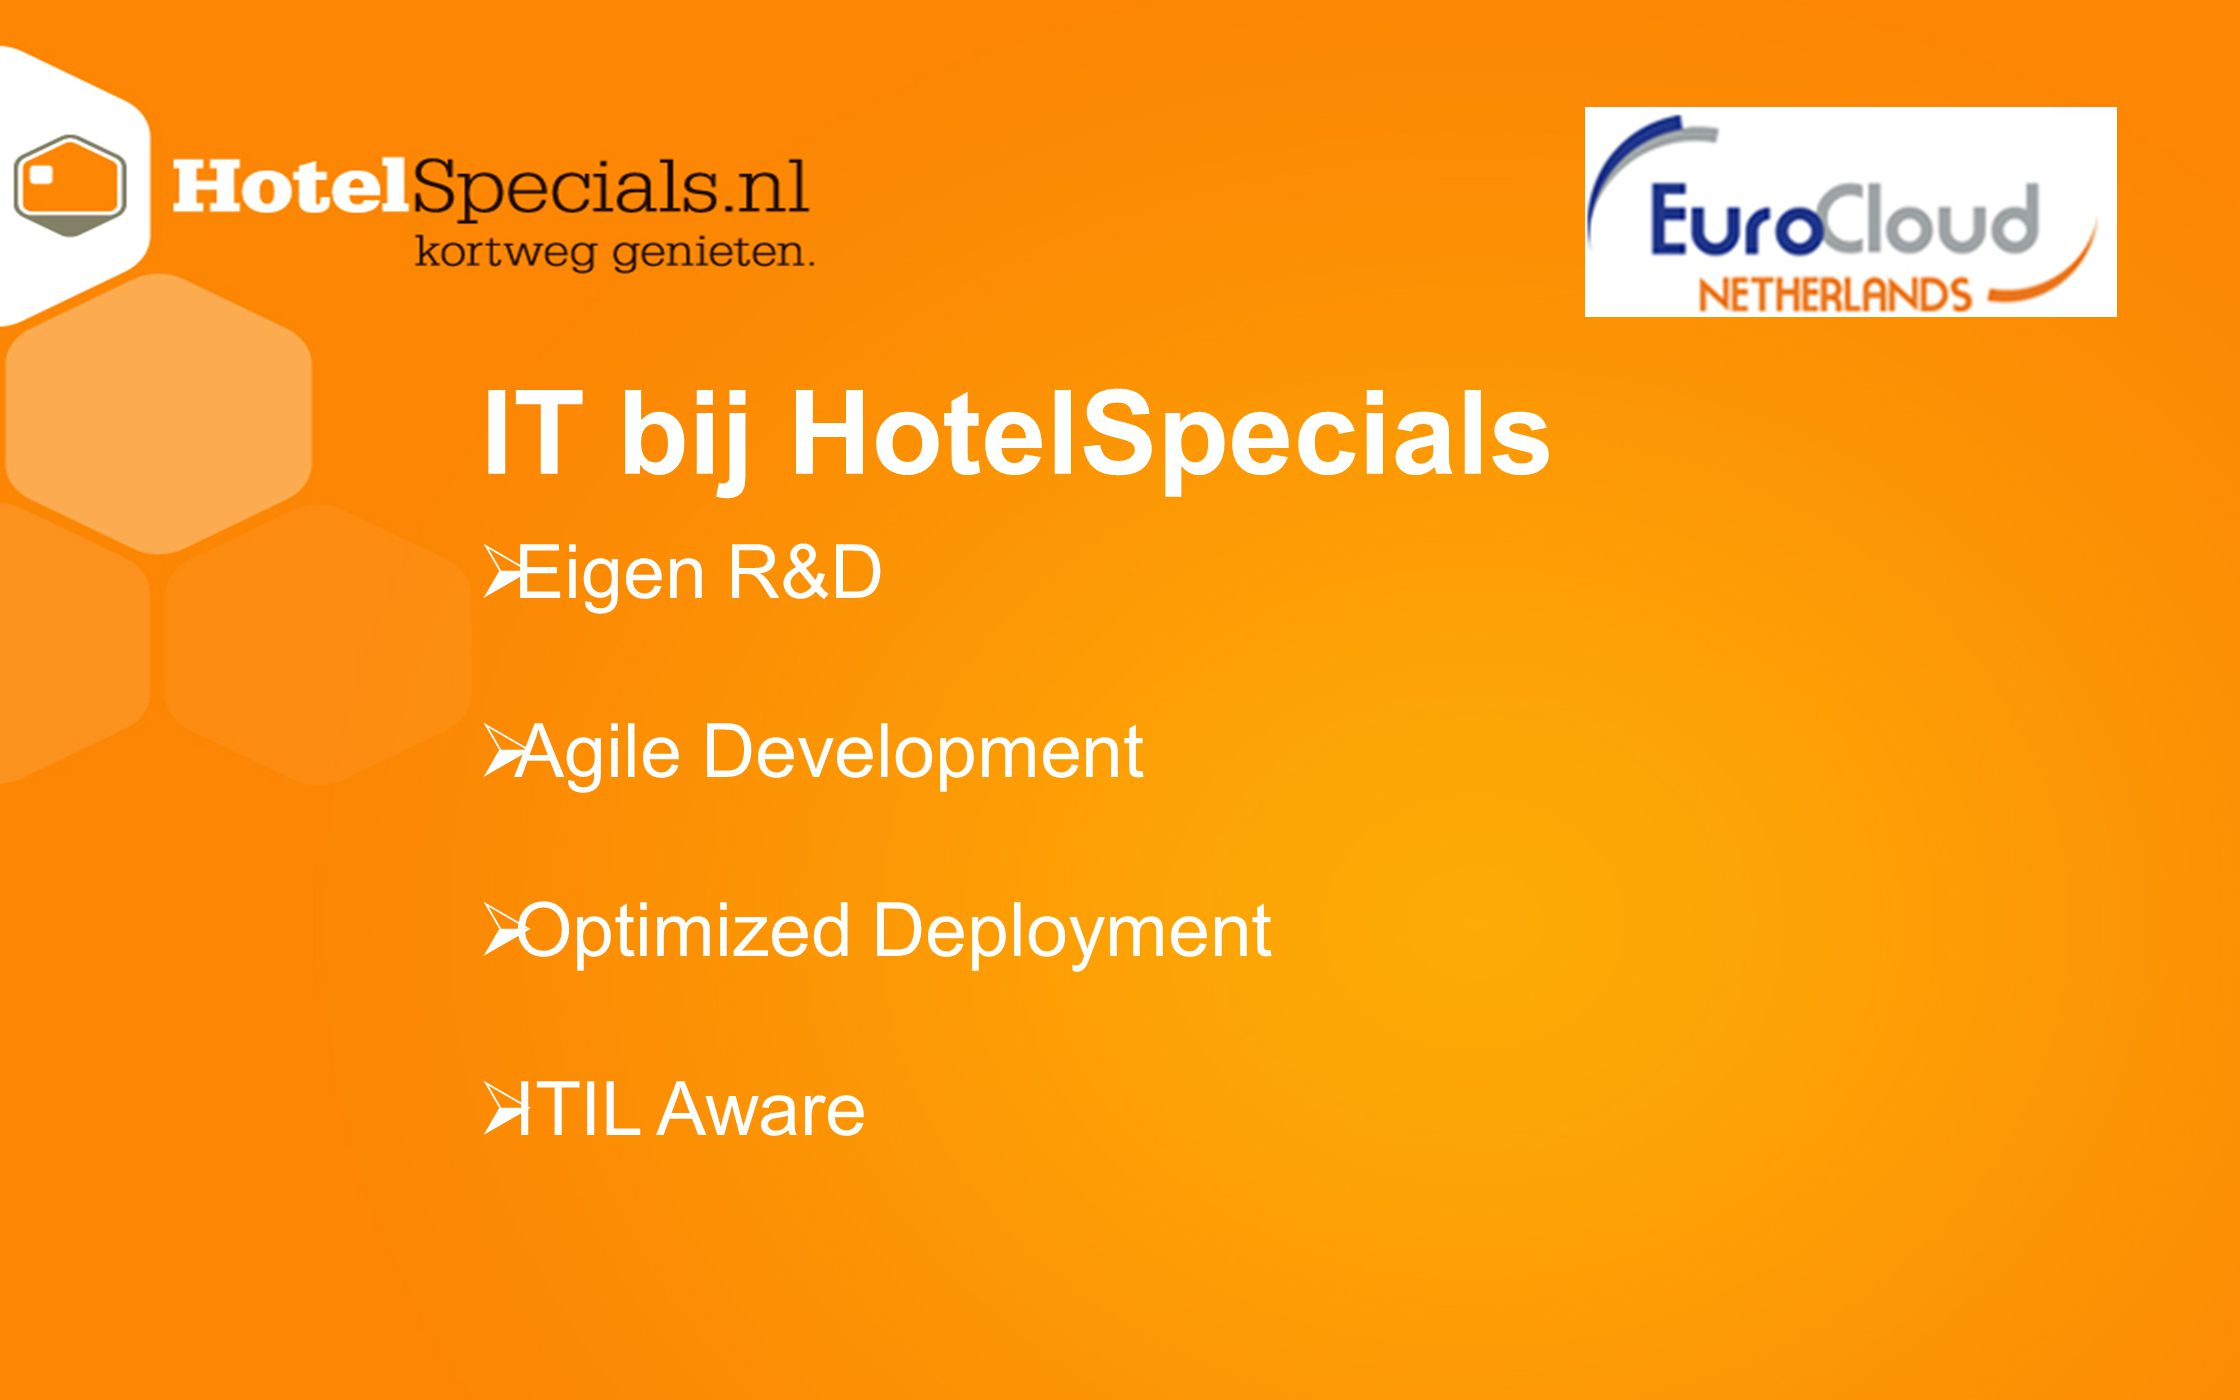 IT bij HotelSpecials Eigen R&D Agile Development Optimized Deployment